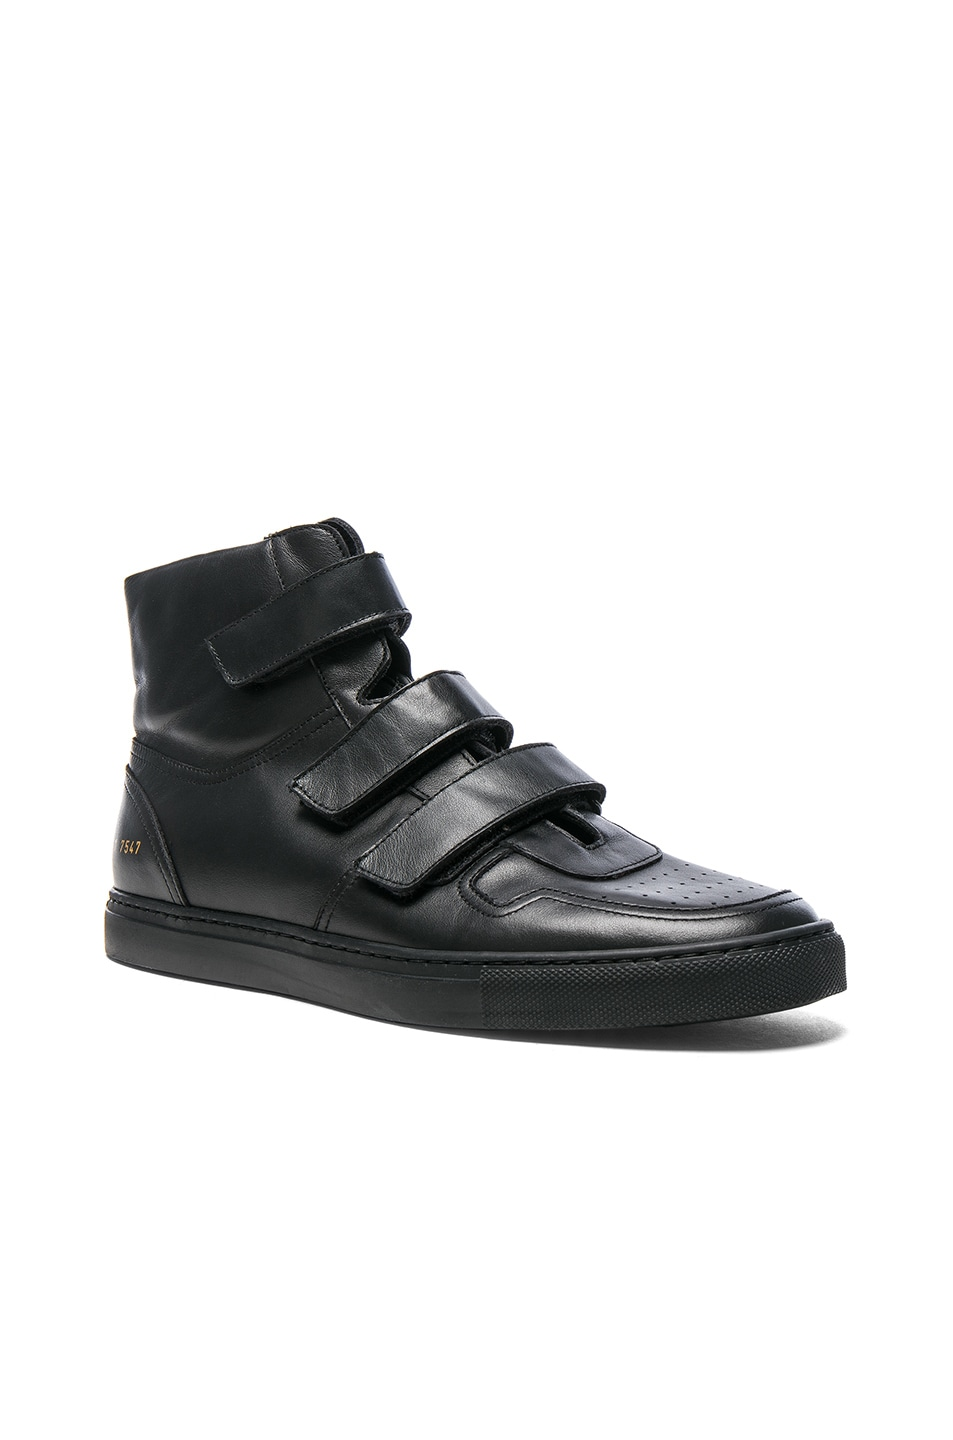 Best Selling Men Robert Geller Black Common Projects Edition High Top Sneakers